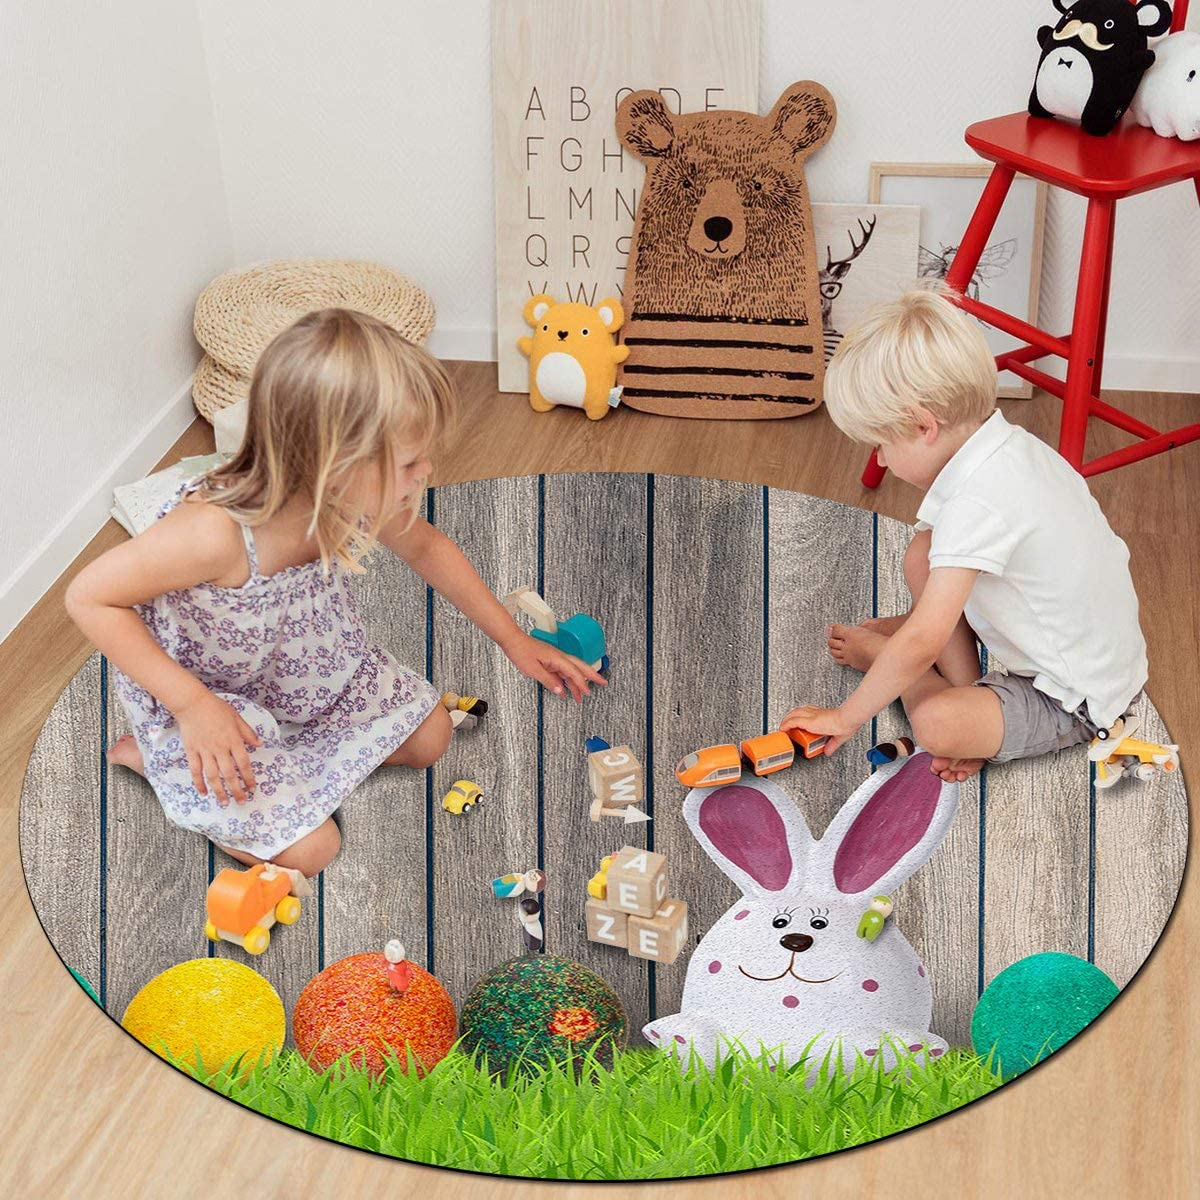 supreme Soft Round Area Rugs for Princess Prince D Play Max 56% OFF Castle 4 ft Tent